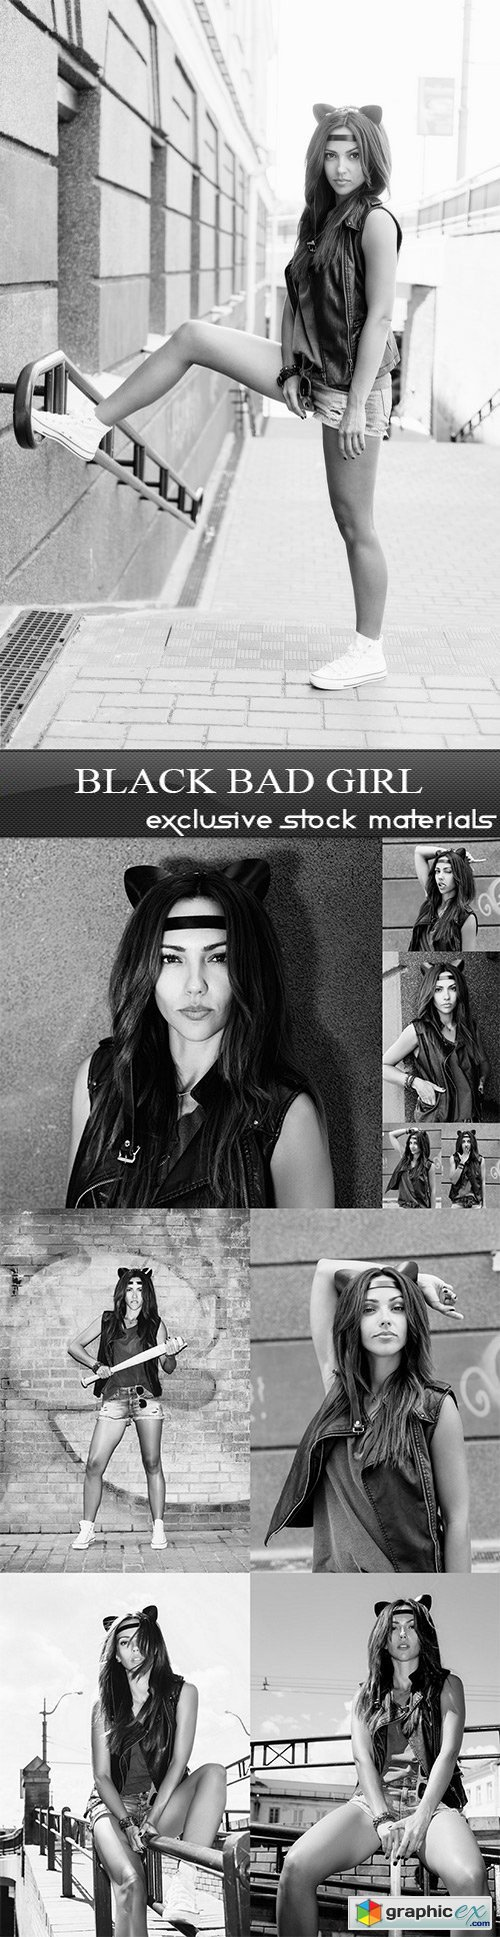 Black Bad Girl - 10 UHQ JPEG